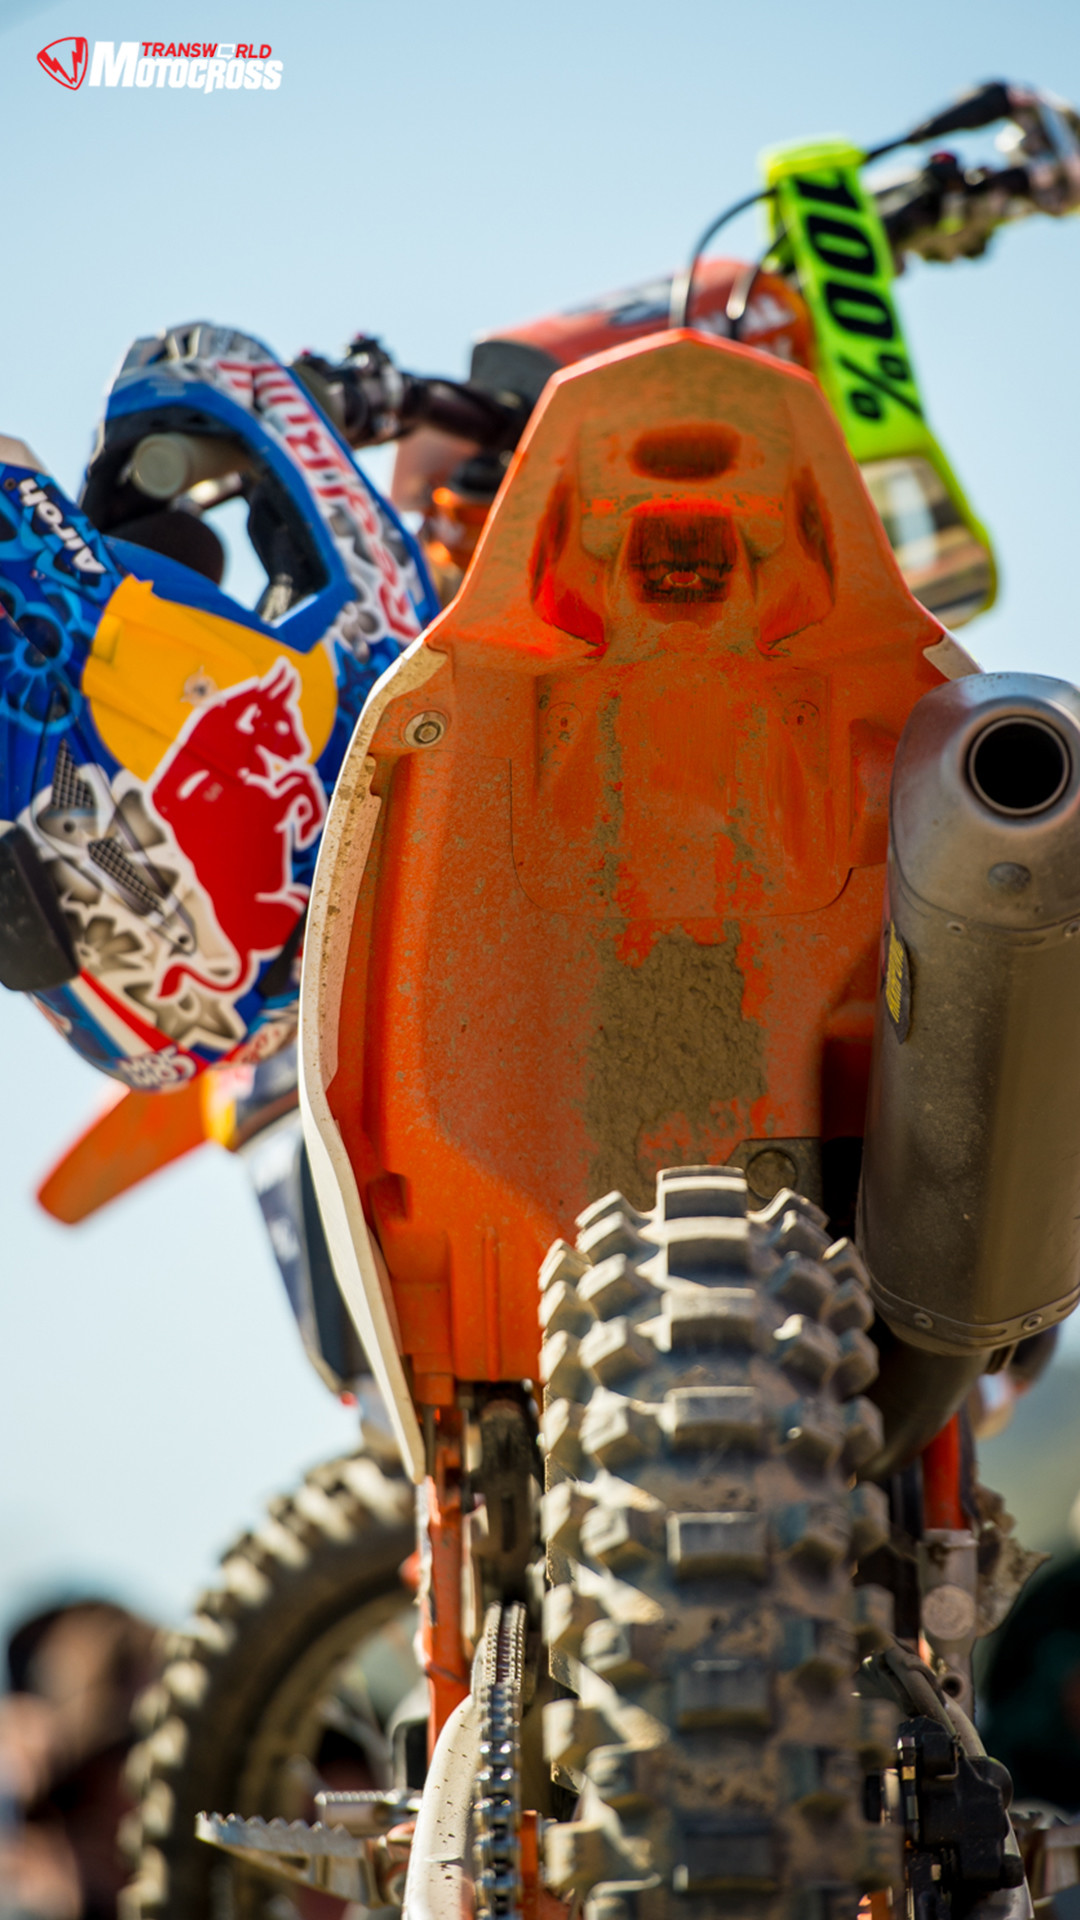 1936x1288 Motocross Wallpaper Android Apps On Google Play 1920A 1280 Wallpapers 39